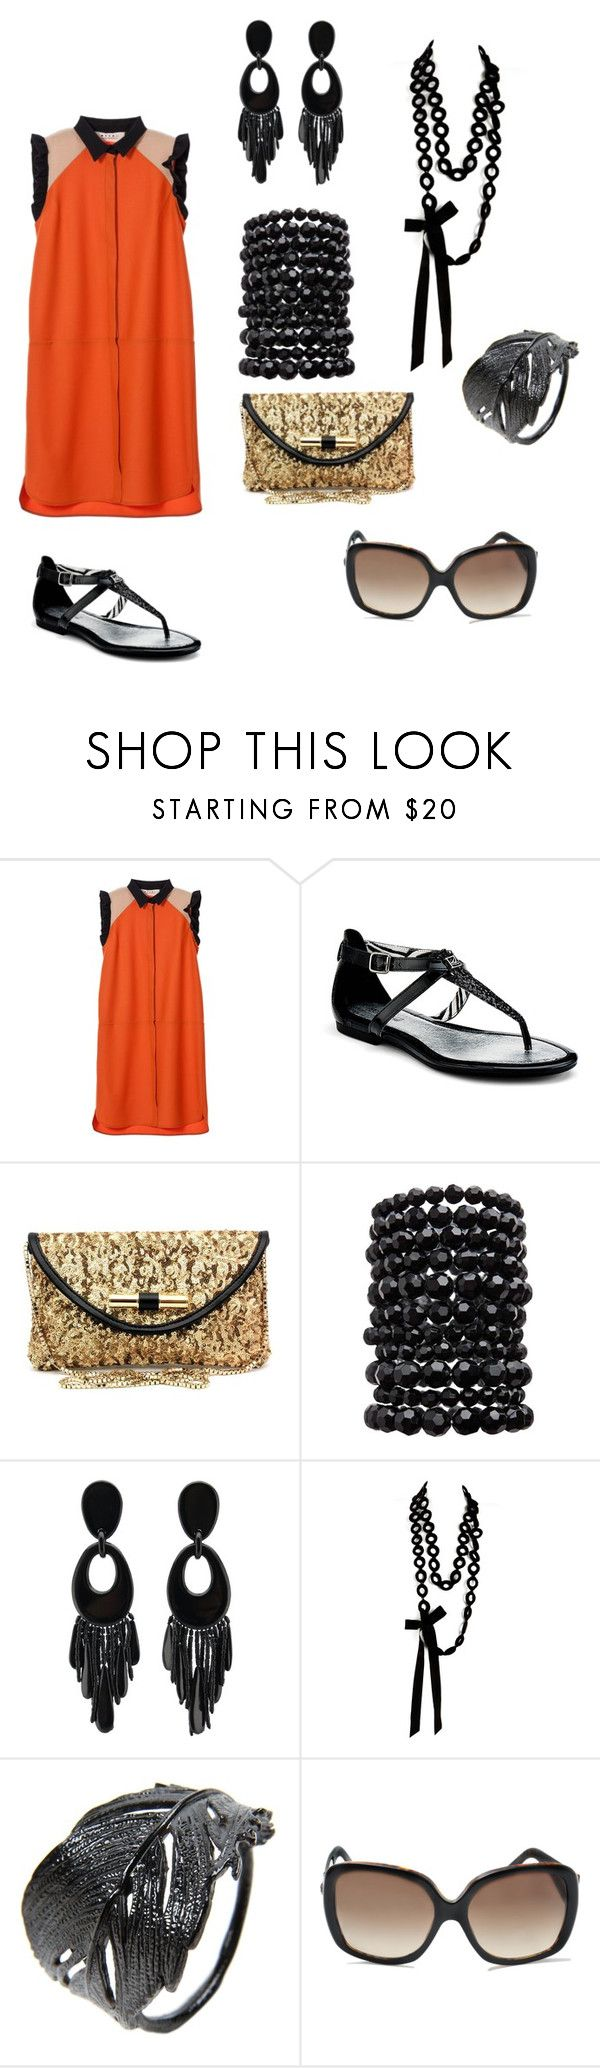 """""""Untitled #223"""" by maria-rosa-pallones ❤ liked on Polyvore featuring Marni, Sperry, Jimmy Choo, Pieces, Monies, Sally Phillips, Alex Monroe and Versace"""